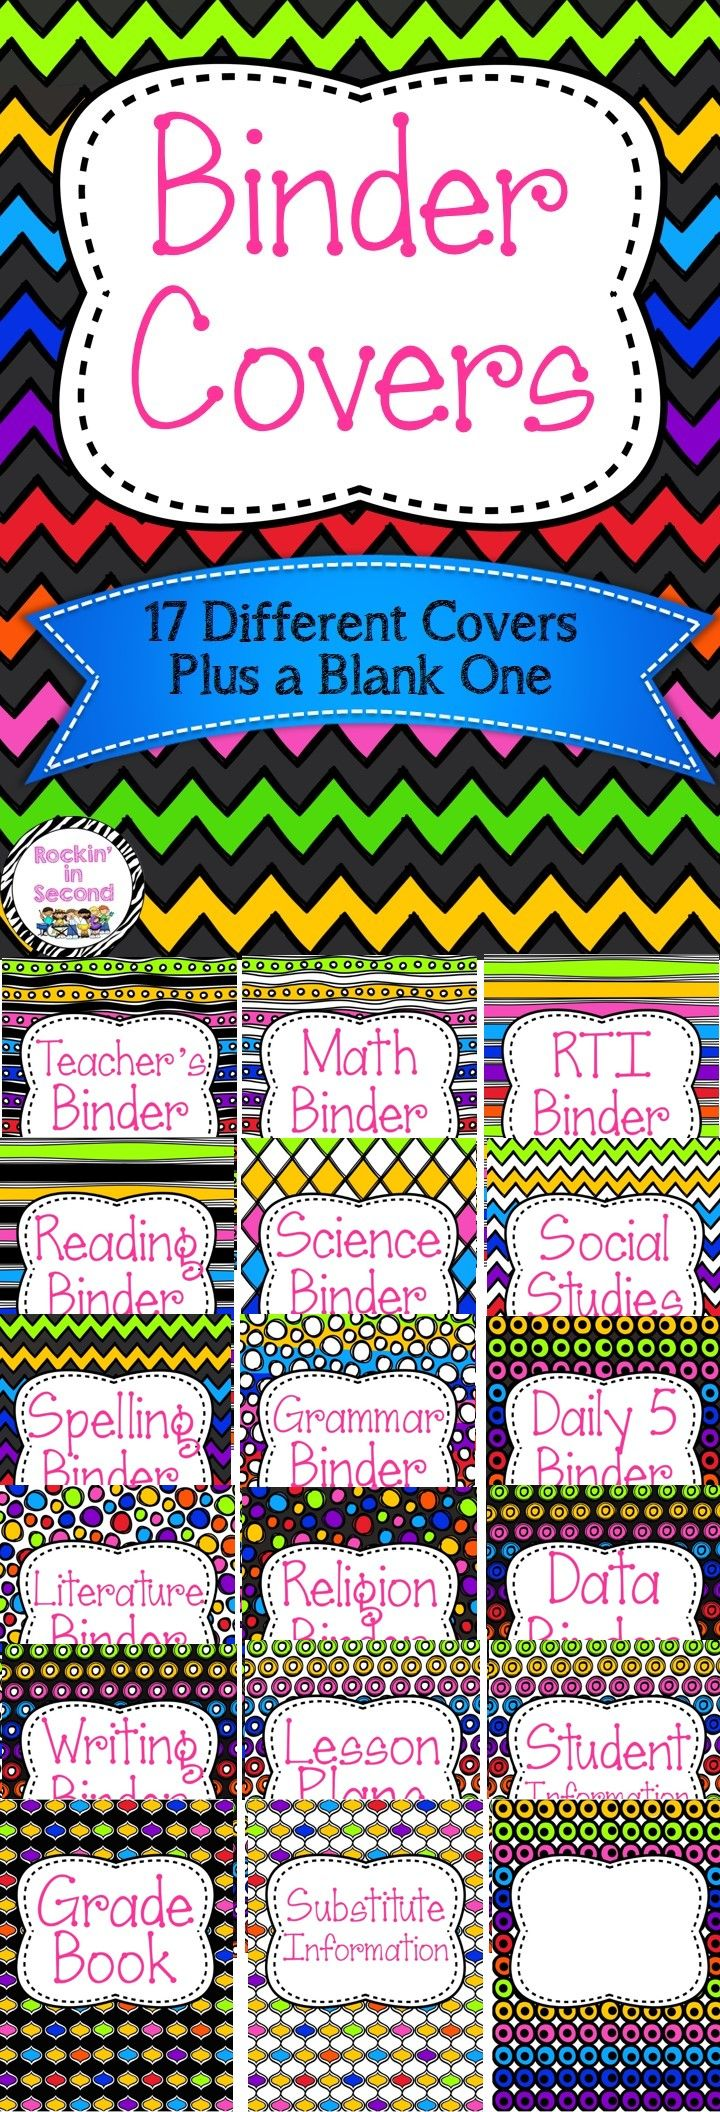 This Rainbow Binder set includes everything to help organize your binders.   This set includes 17 binder covers:  * Teacher's Binder * Math  * RTI * Reading  * Science * Social Studies * Grammar * Spelling * Daily 5 * Religion * Data * Literature * Writing * Lesson Plans * Grade Book * Student Information * Substitute Information * A blank one to make and add anything you want! =)  Follow me on TPT for more exciting activities and FREEBIES!! All new products are 50% off for the first 24…